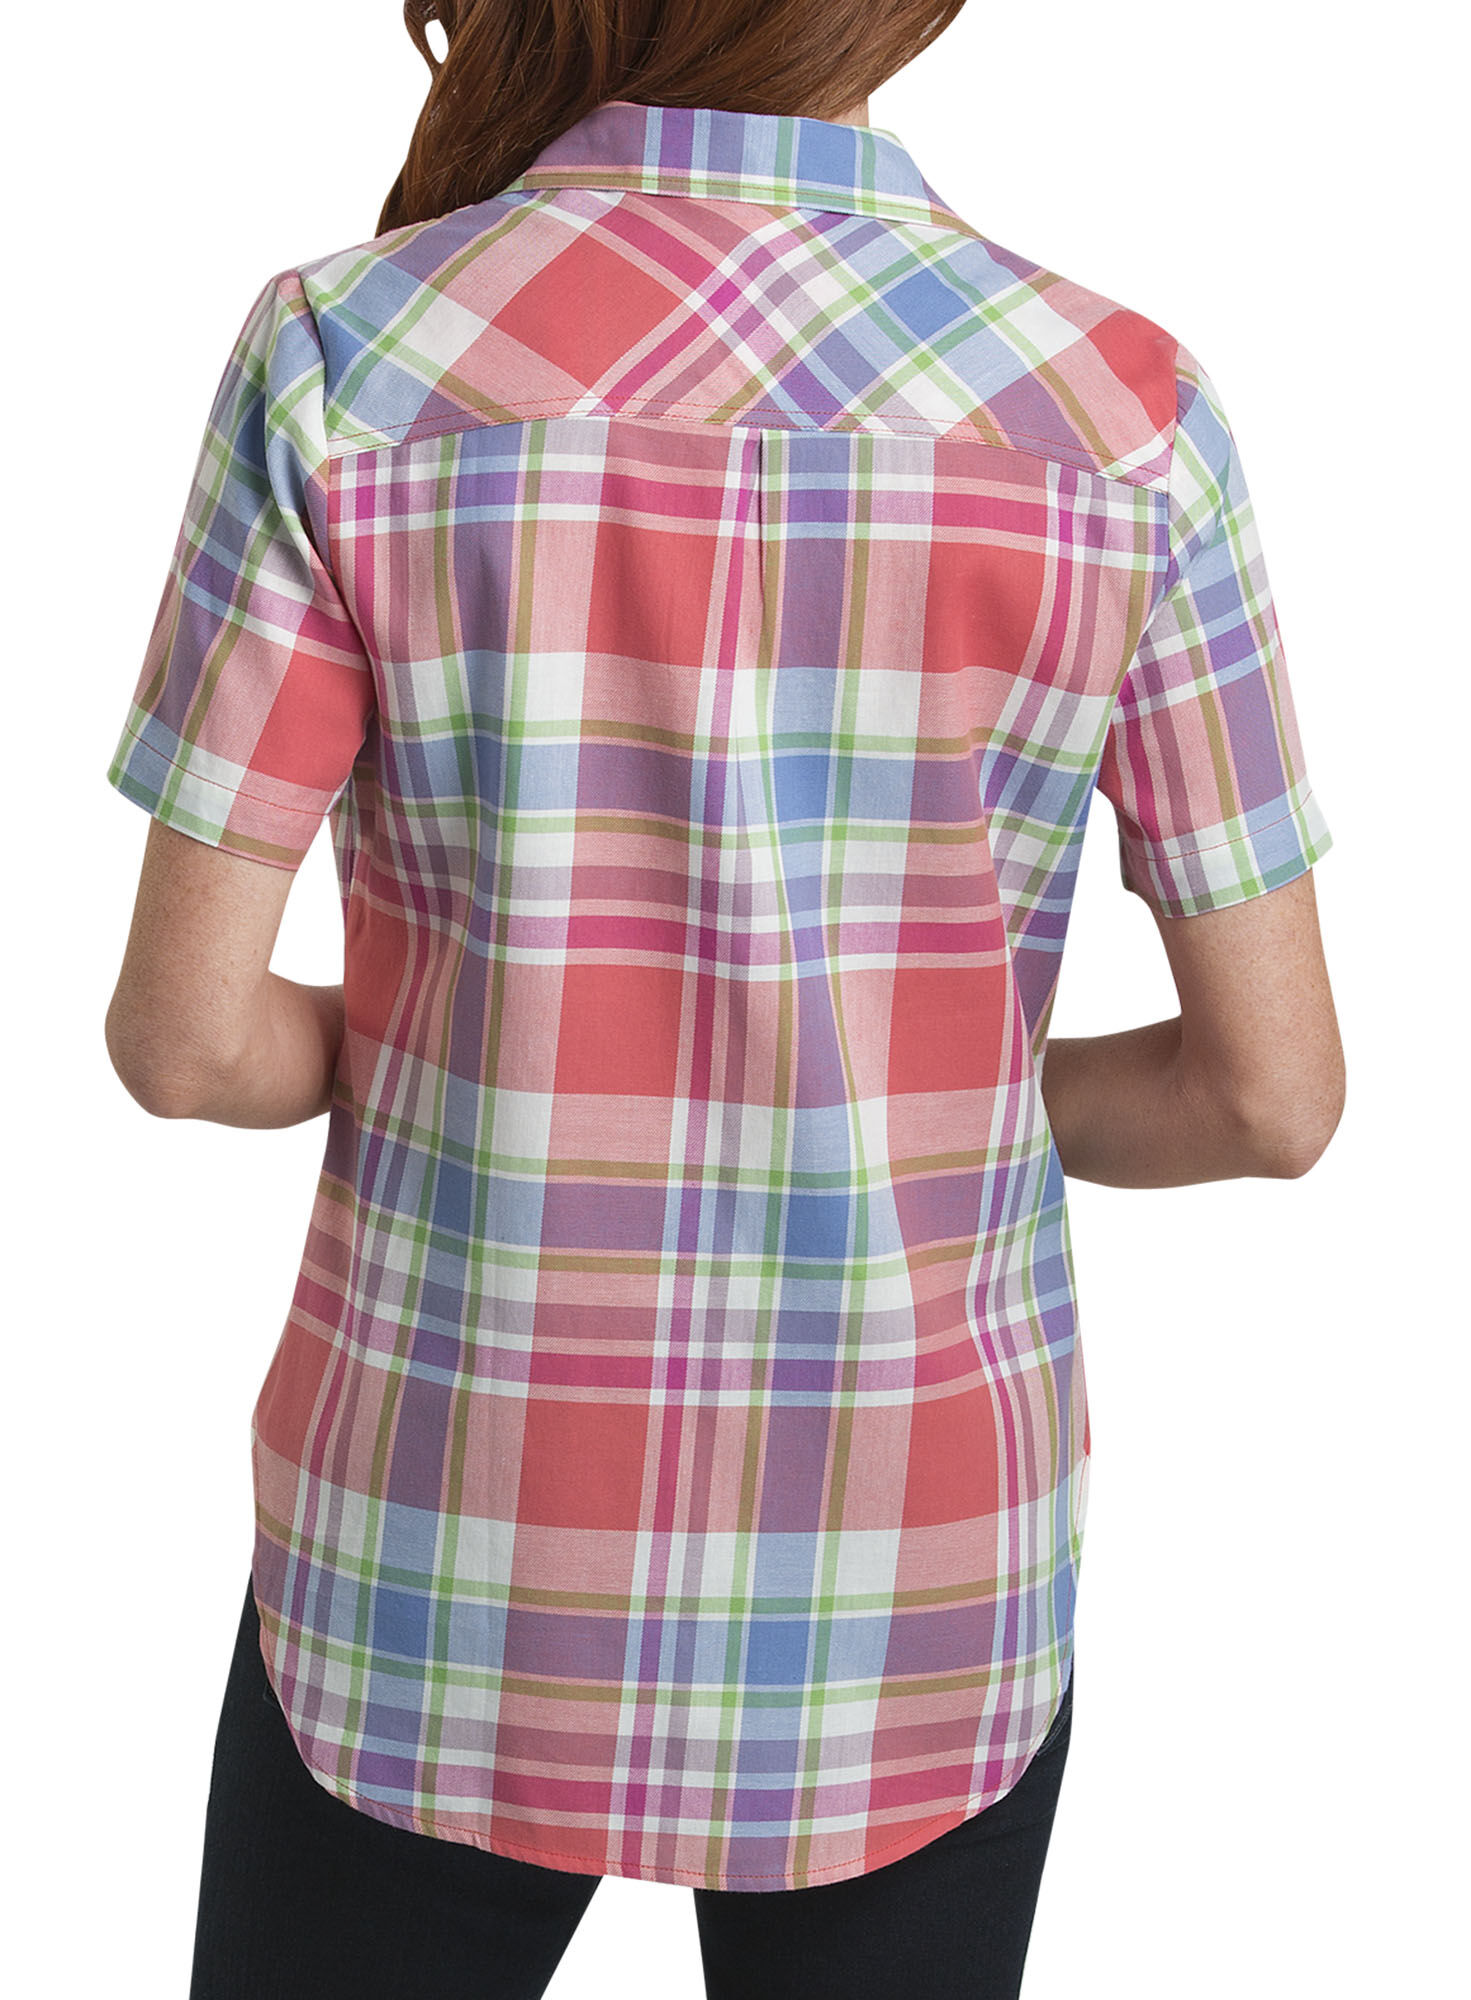 Mens Casual Regular Fit Short Sleeve Button Down Plaid Checked Shirts $ 22 99 Prime. out of 5 stars 4. Deborri. Men Plaid Cotton Casual Short Sleeve Button Down Dress Shirts. from $ 20 99 Prime. out of 5 stars 7. Coevals Club. Men's Casual Plaid Snap Front Short Sleeve Shirt. from $ .